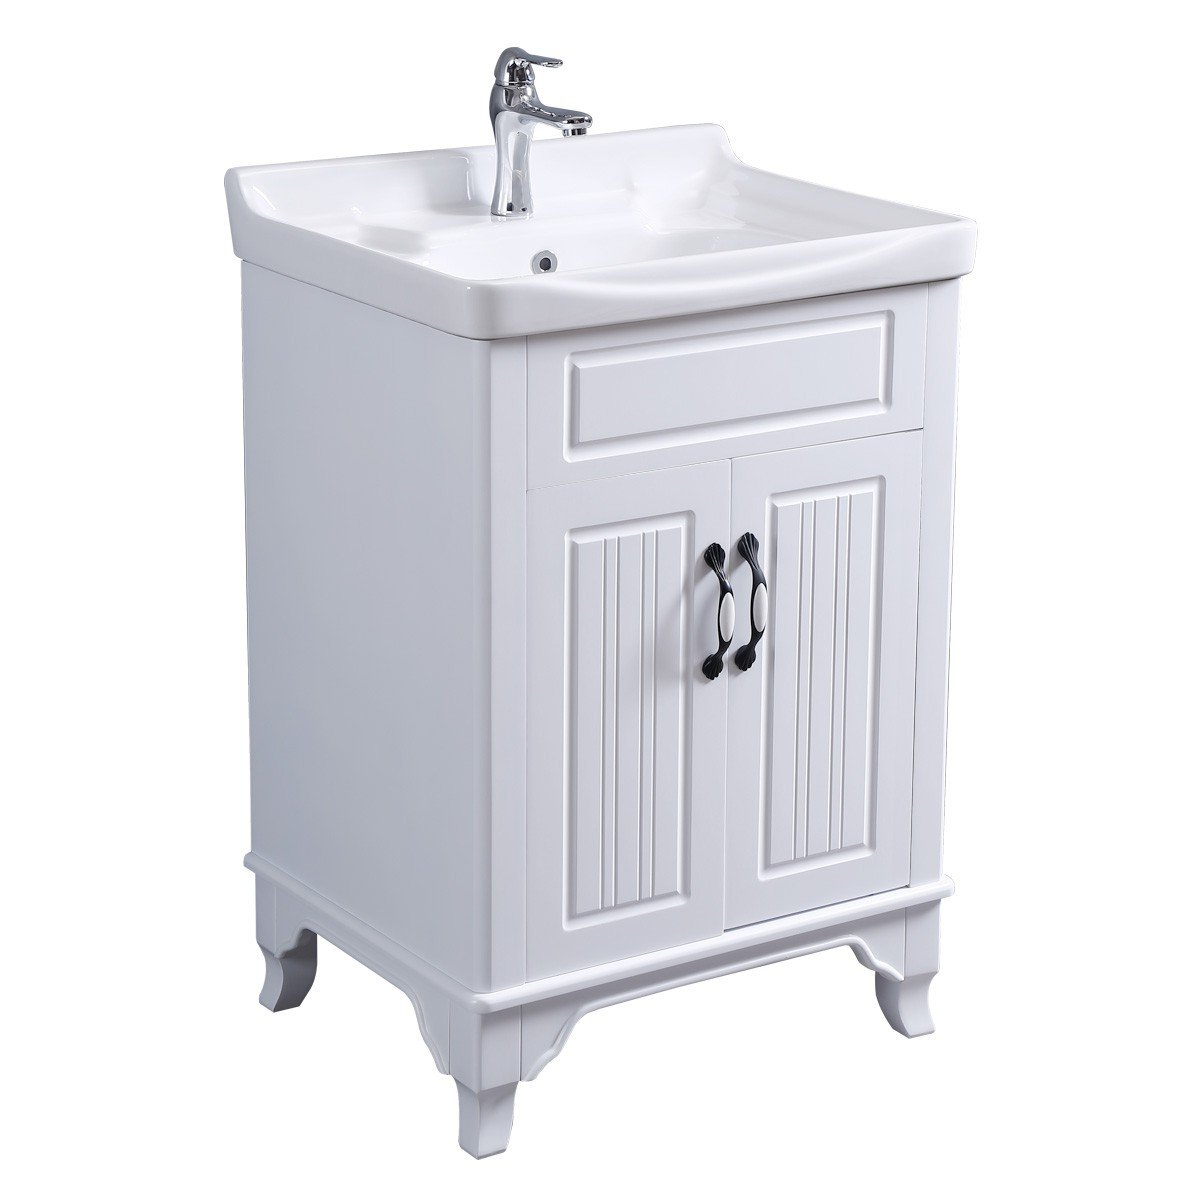 Renovator s Supply Large Cabinet Vanity Sink White Free Standing With Ample Cabinet Space Sink Basin Overflow With Large Raised Back Splash Set Includes Elegant Chrome Faucet And Drain